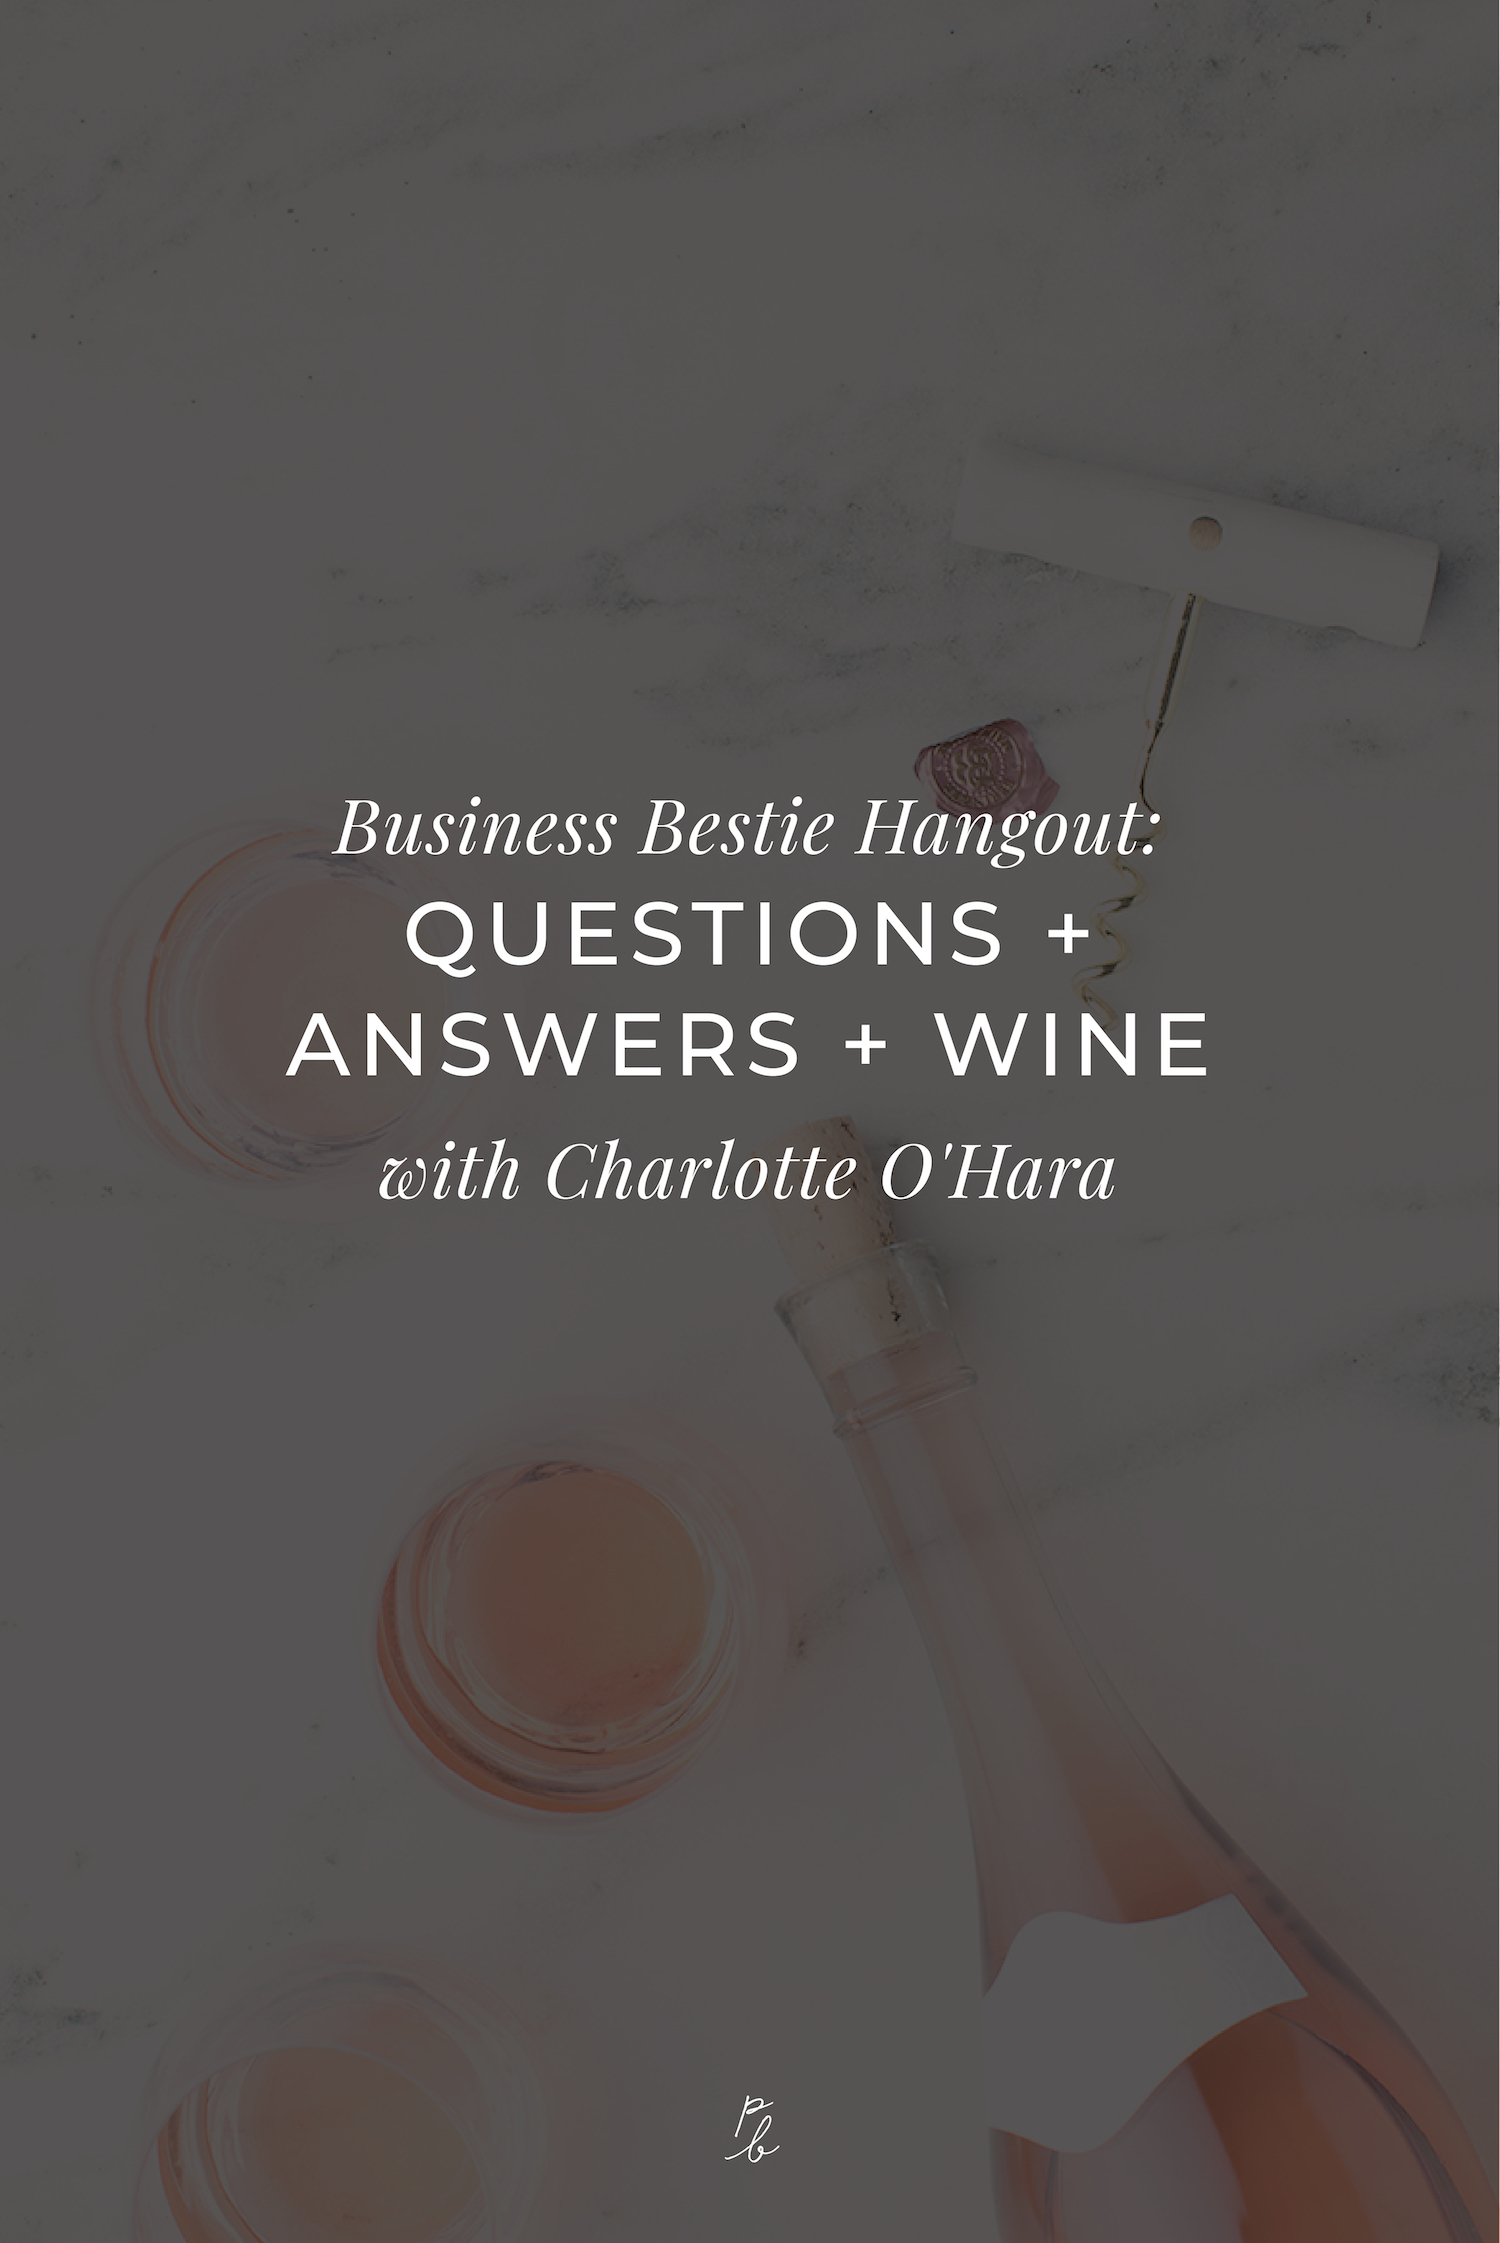 Business Bestie Hangout- Questions + Answers + Wine with Charlotte O'Hara -02.jpeg